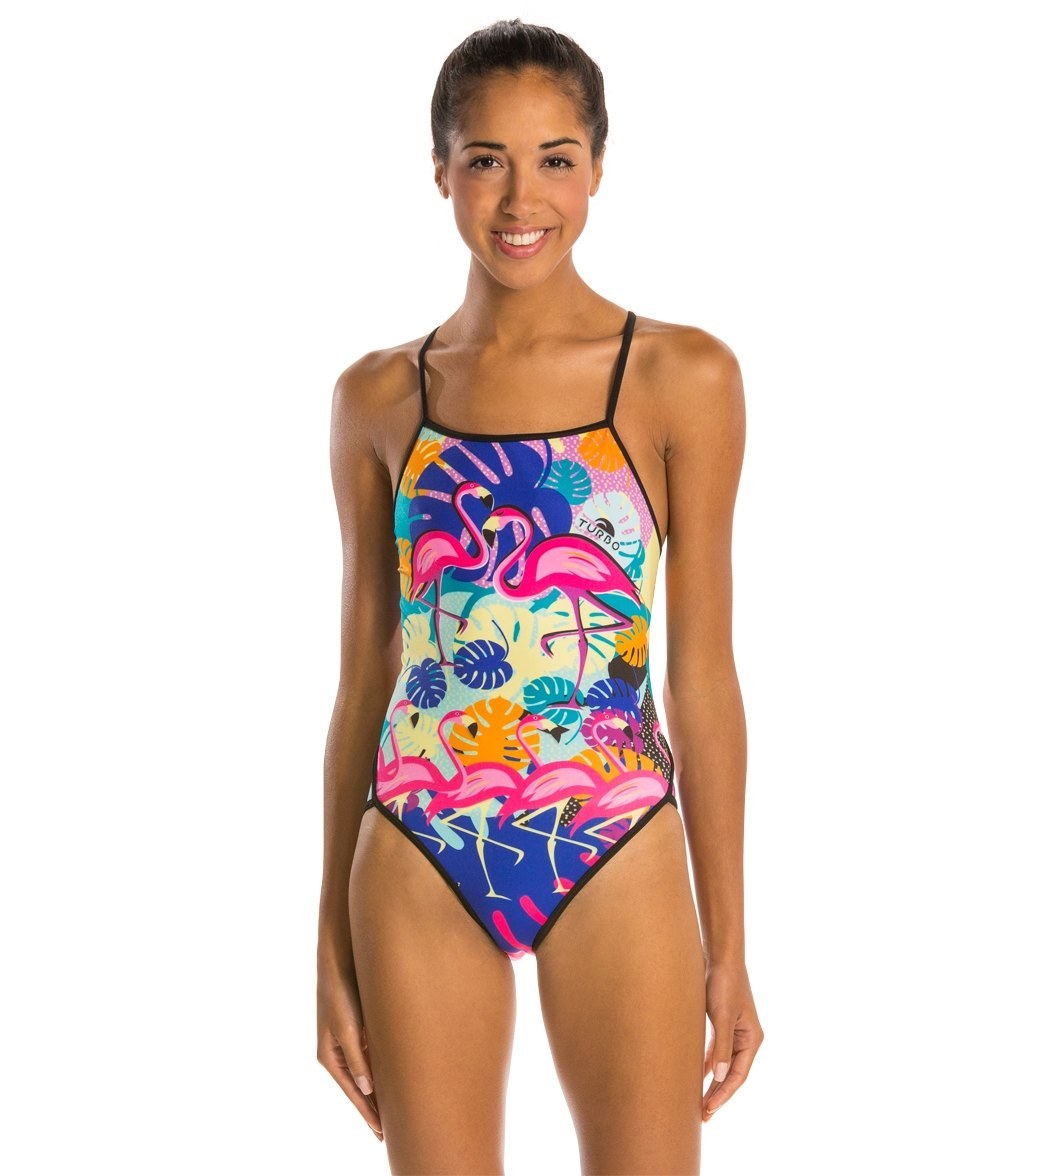 87e6fb92b5 Turbo Flamingo Thin Strap One Piece Swimsuit at SwimOutlet.com - Free  Shipping